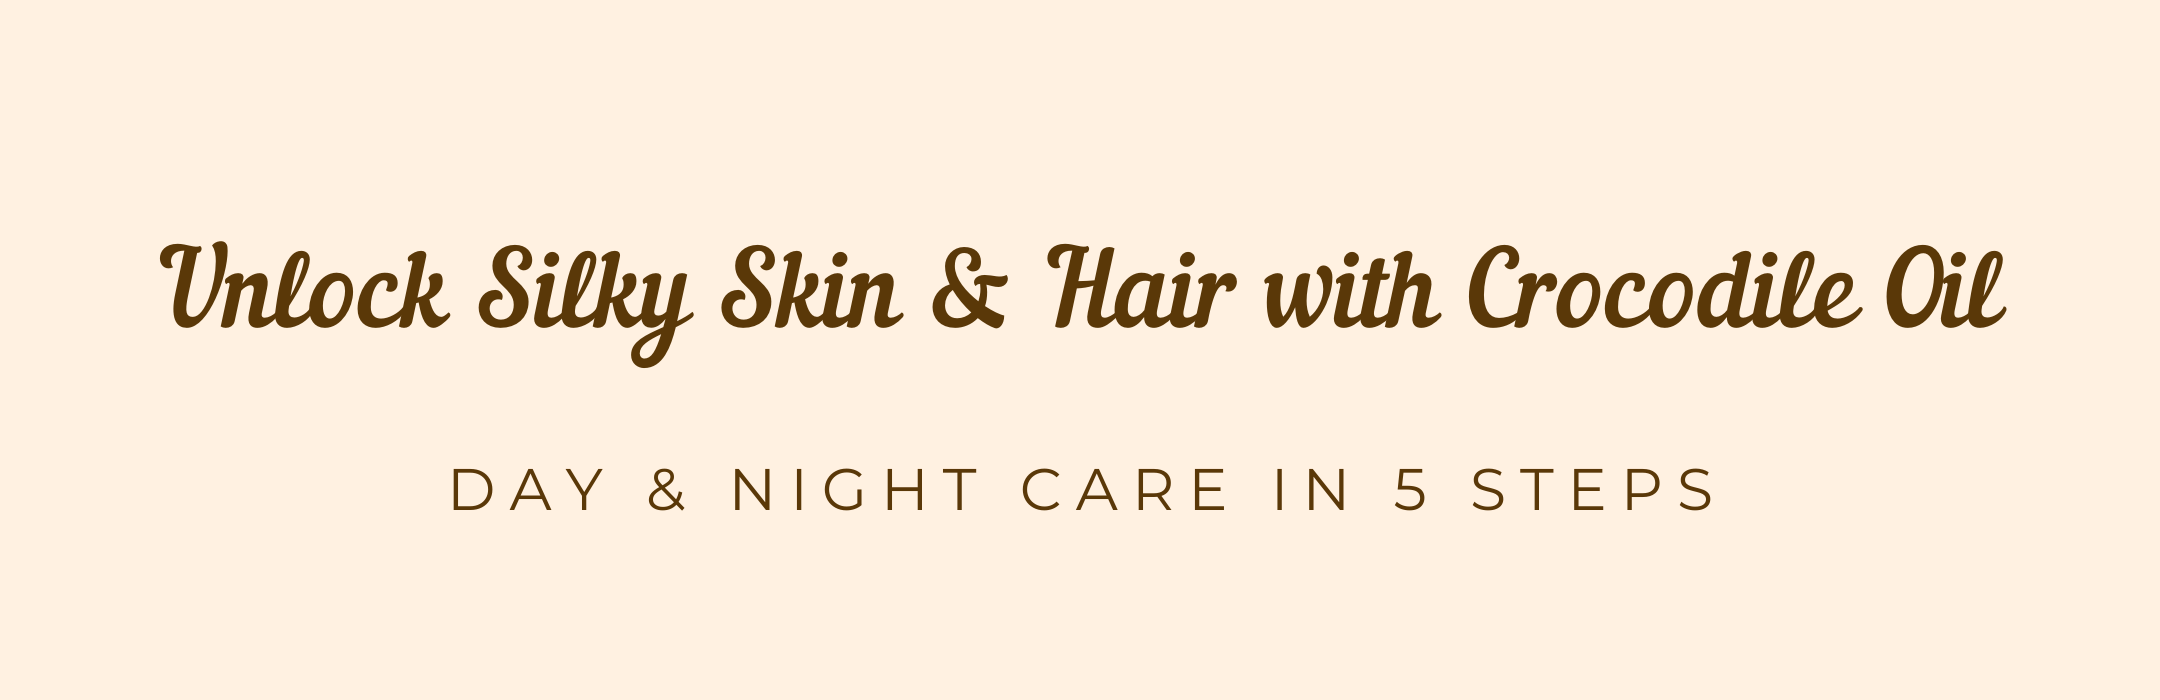 Day and night care in 5 steps